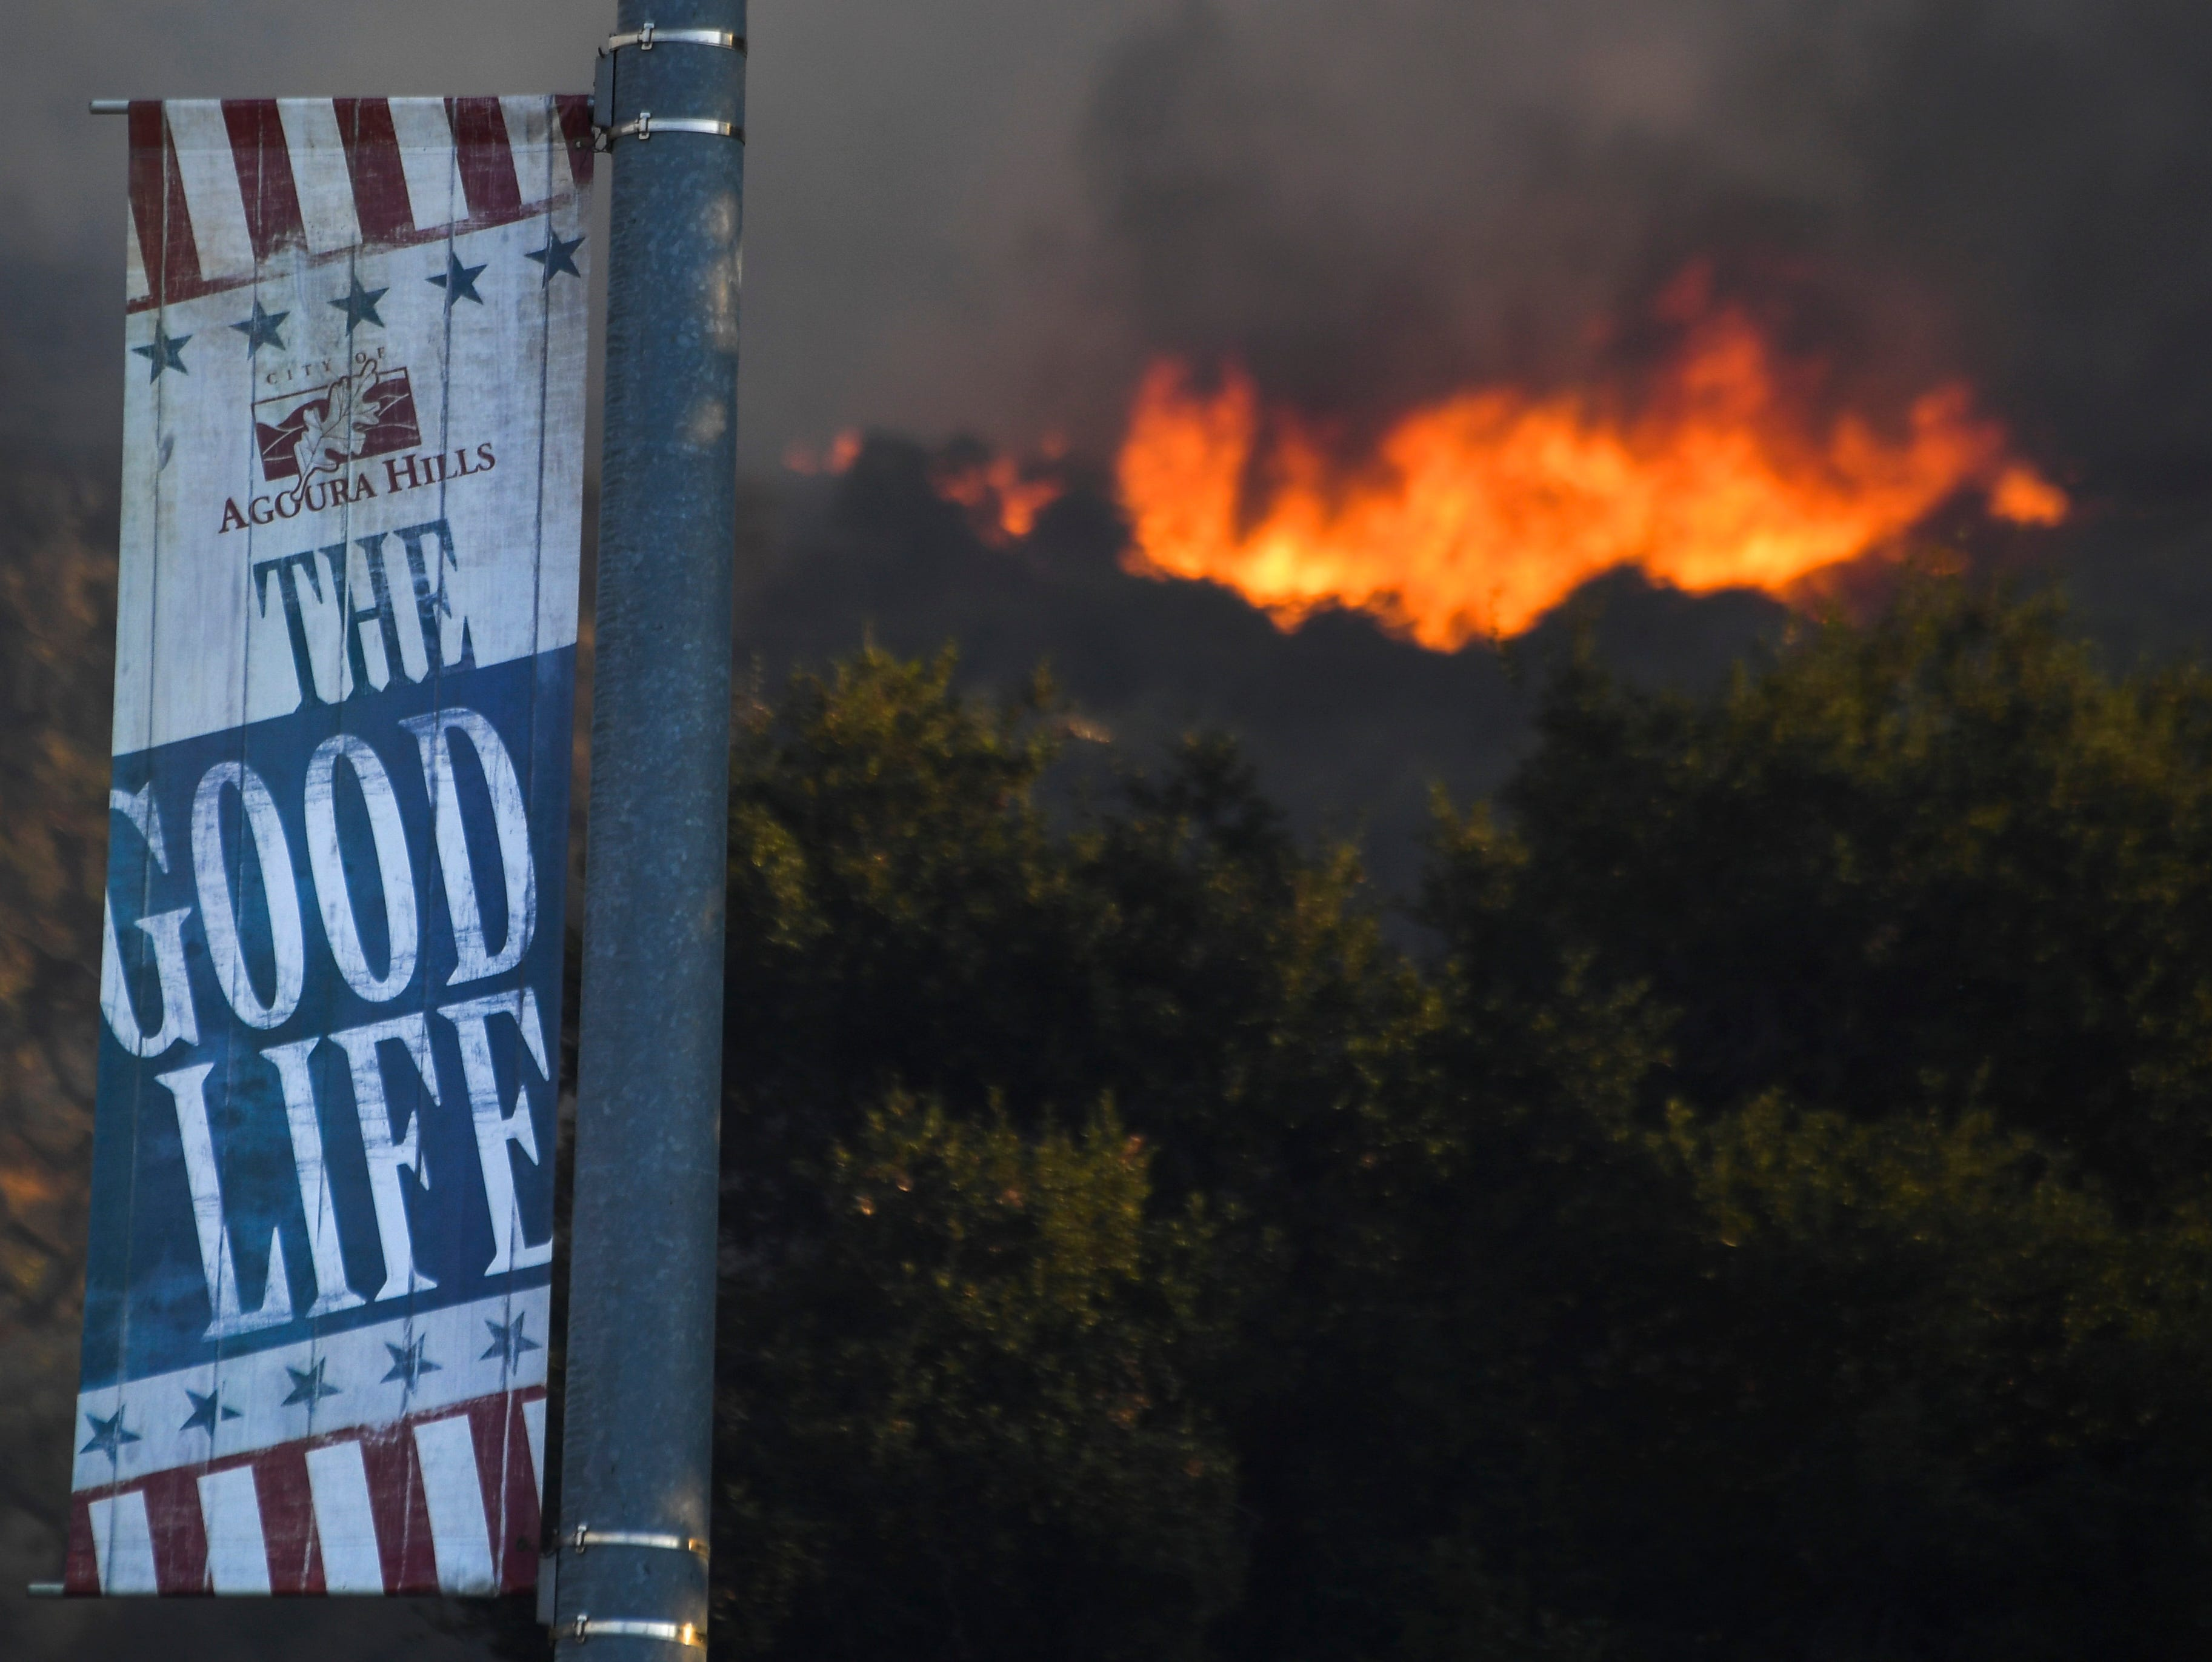 Flames send smoke into an Agoura Hills neighborhood in California on Nov. 9, 2018. The Woosley Fire in Ventura County has grown to over 35,000 acres and forced the evacuation of many residents.